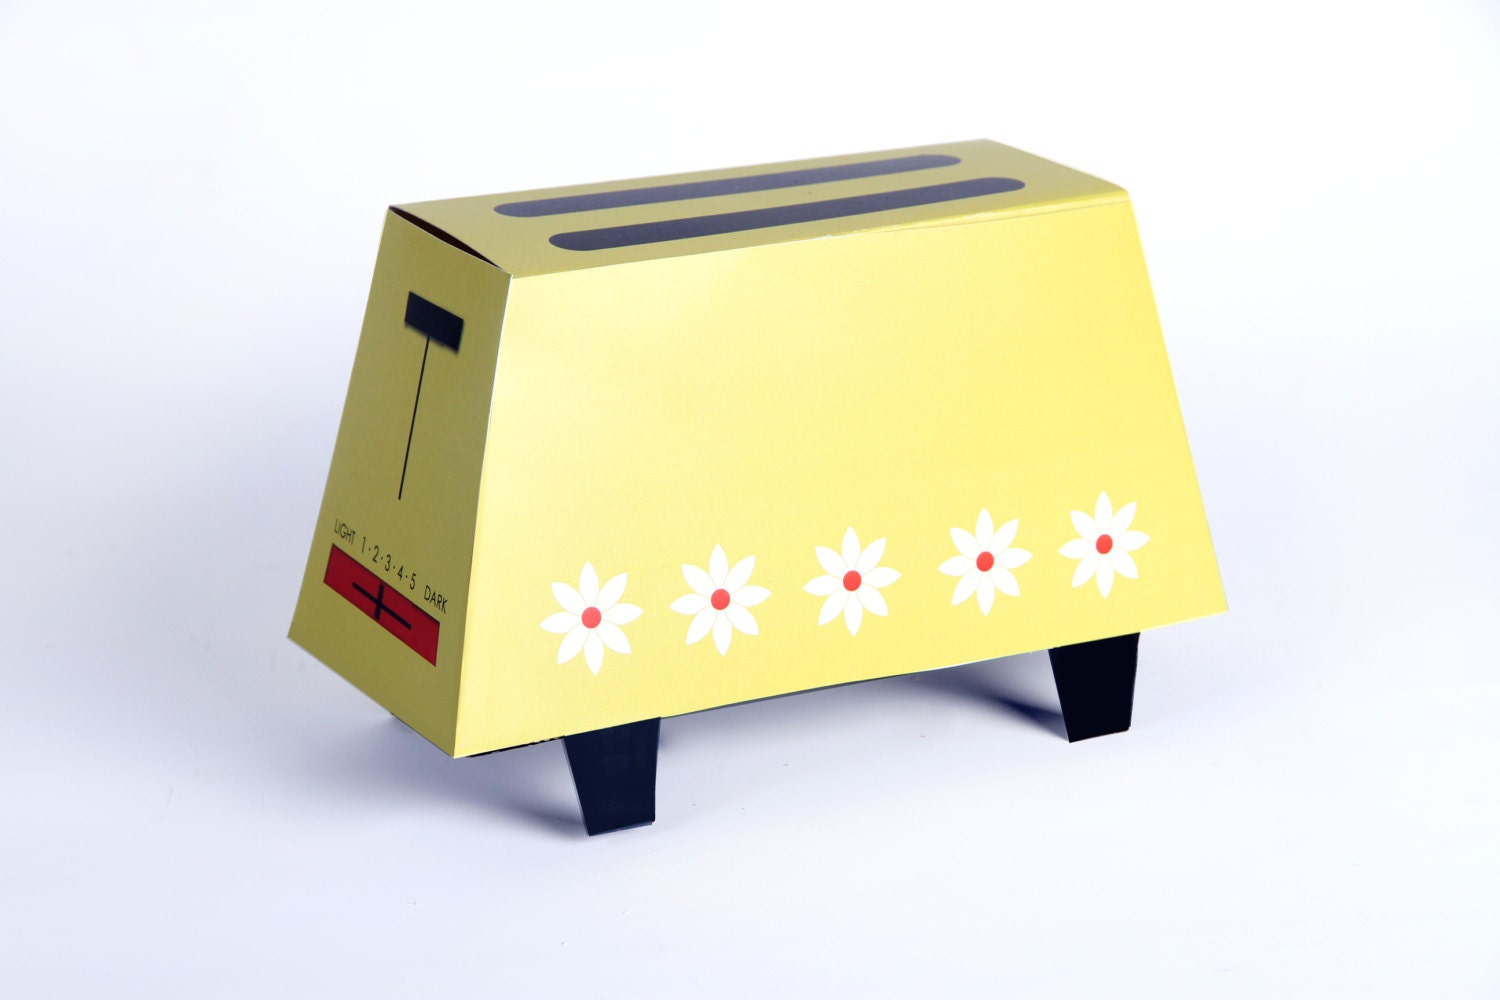 Retro Wedding Gifts: Retro Toaster Gift Box Template Vintage Wedding Gift Bridal